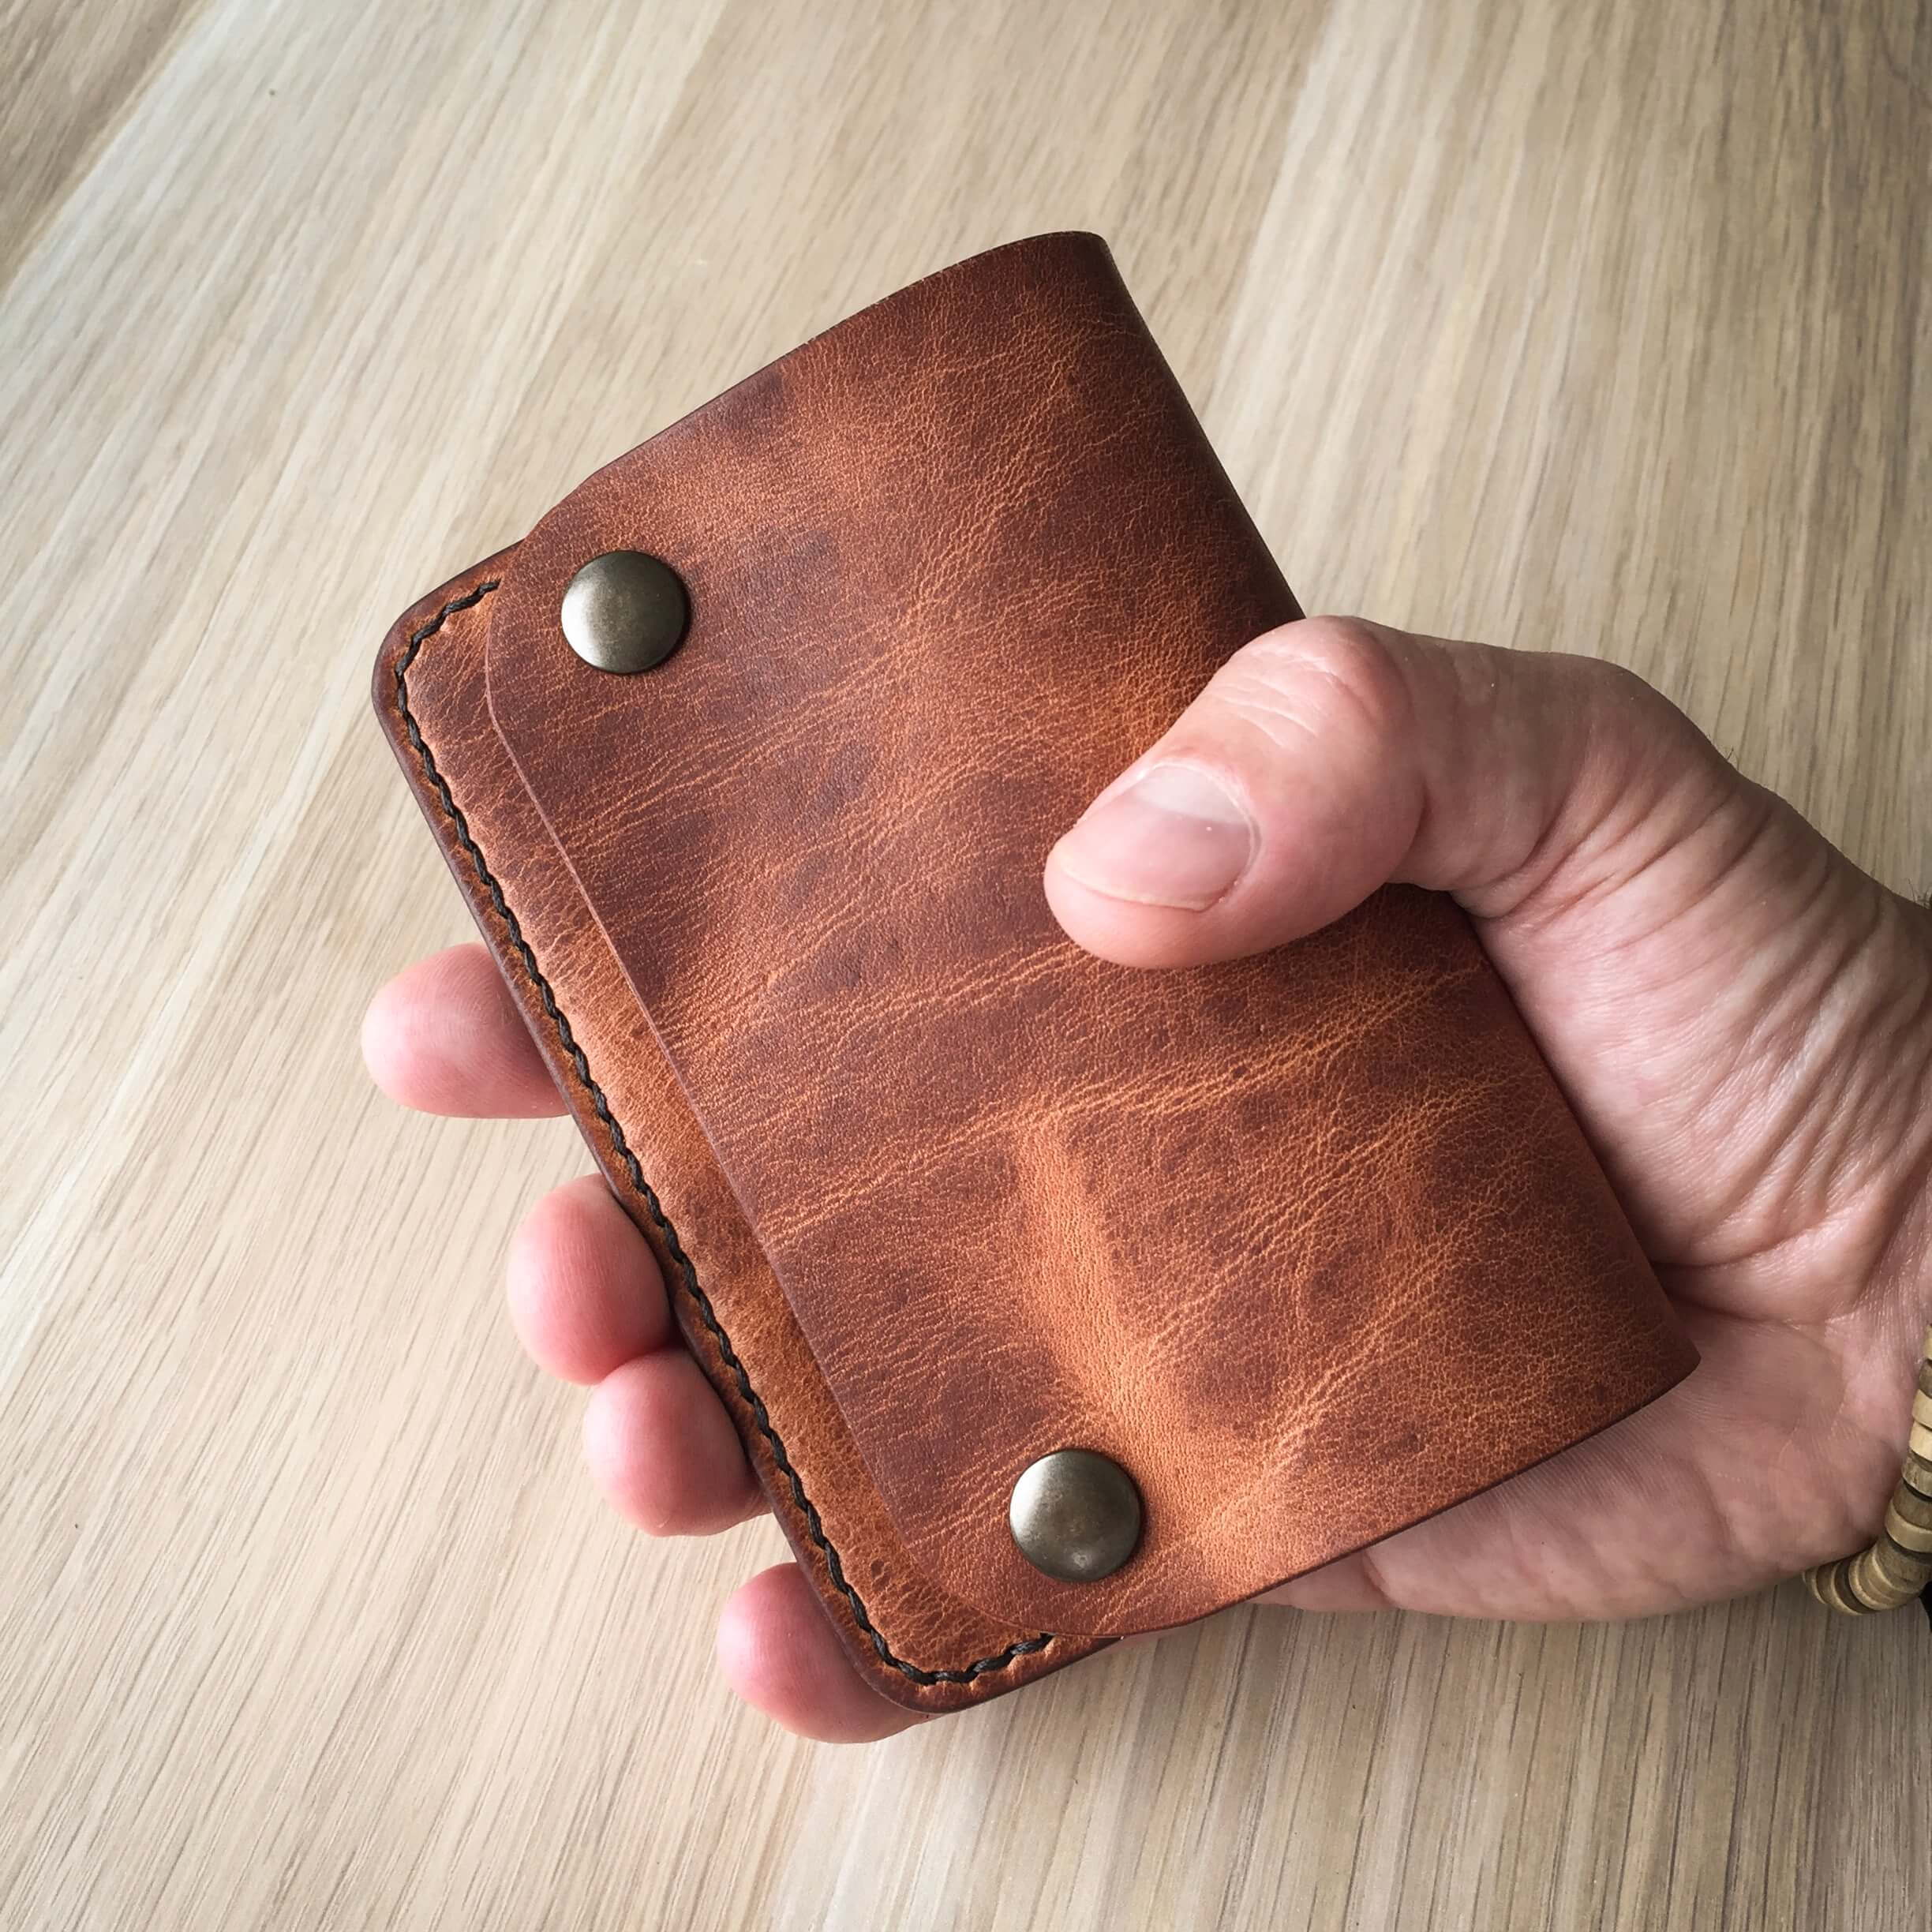 Leather purse made in Horween Derby leather English Tan